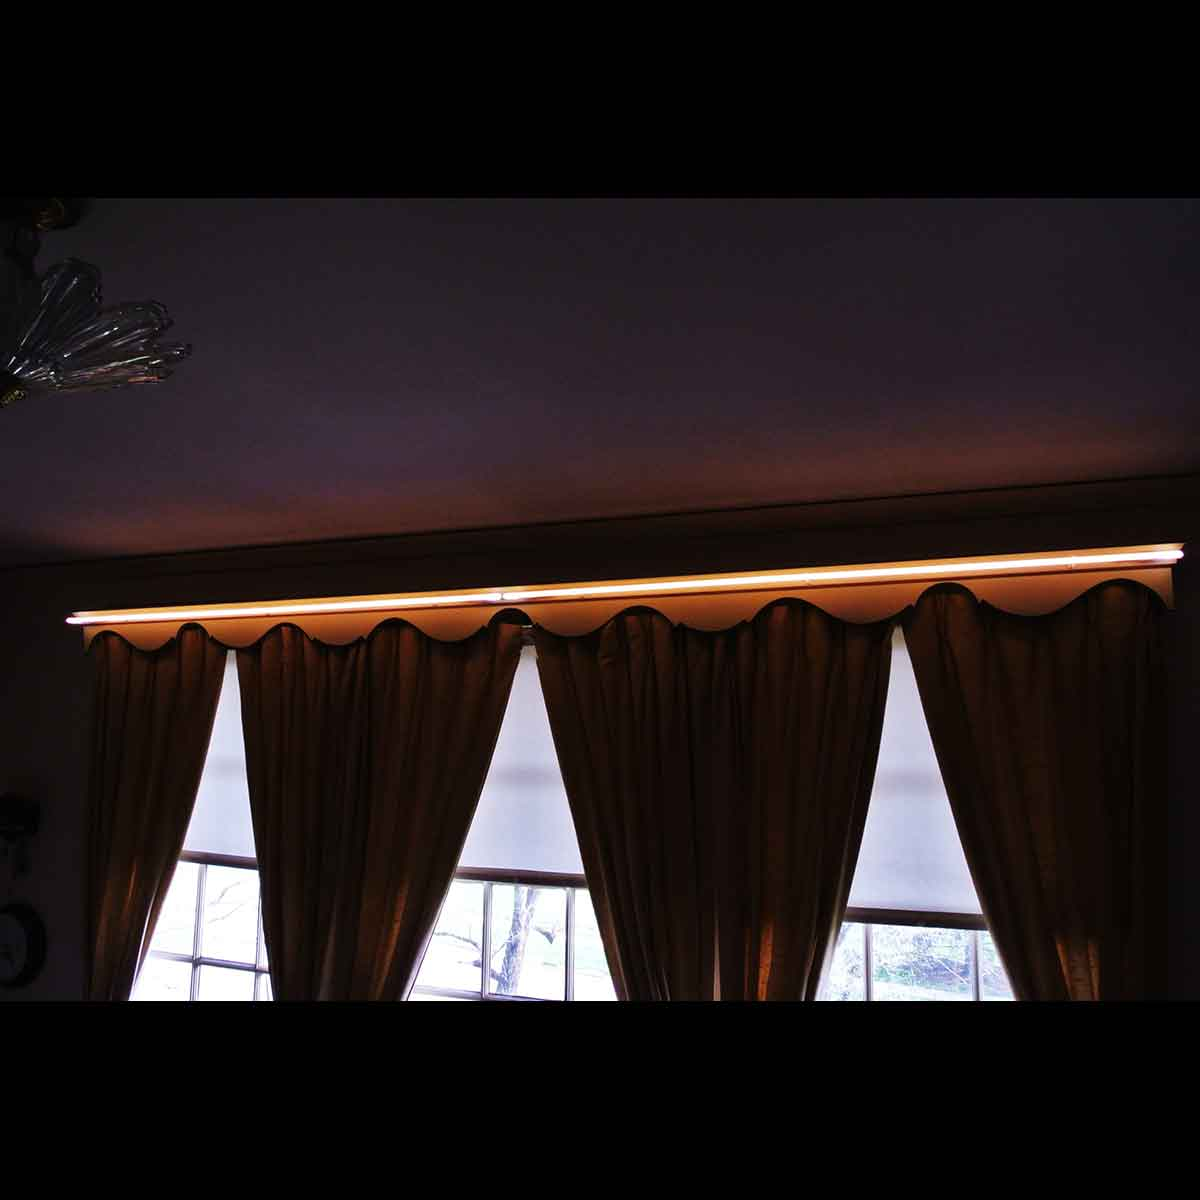 Warm White Luminous Curtain Valance Lighting!